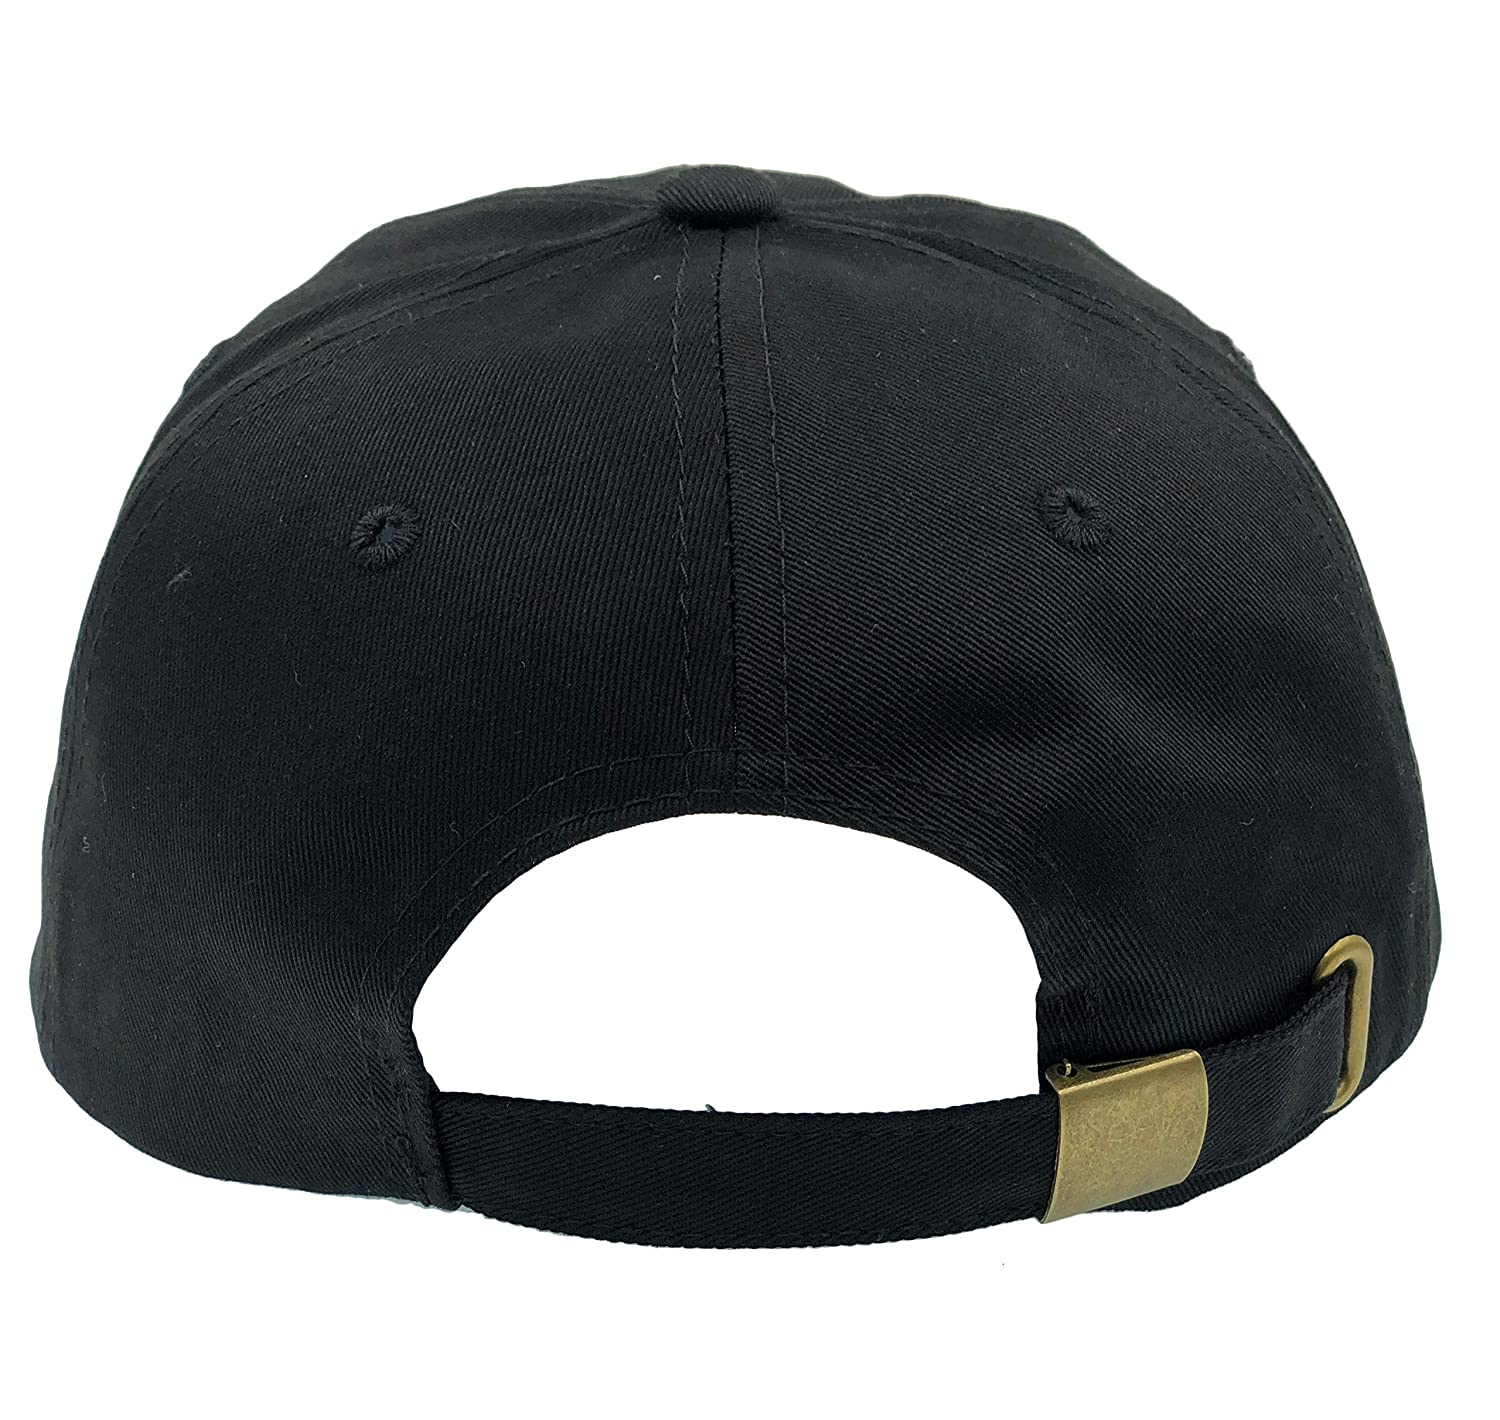 65ab5a81578 CUSTOM Donut Hat Baseball Cap Dad Hats Embroidered Floppy For Men Women  Unstructured (Black) at Amazon Men s Clothing store